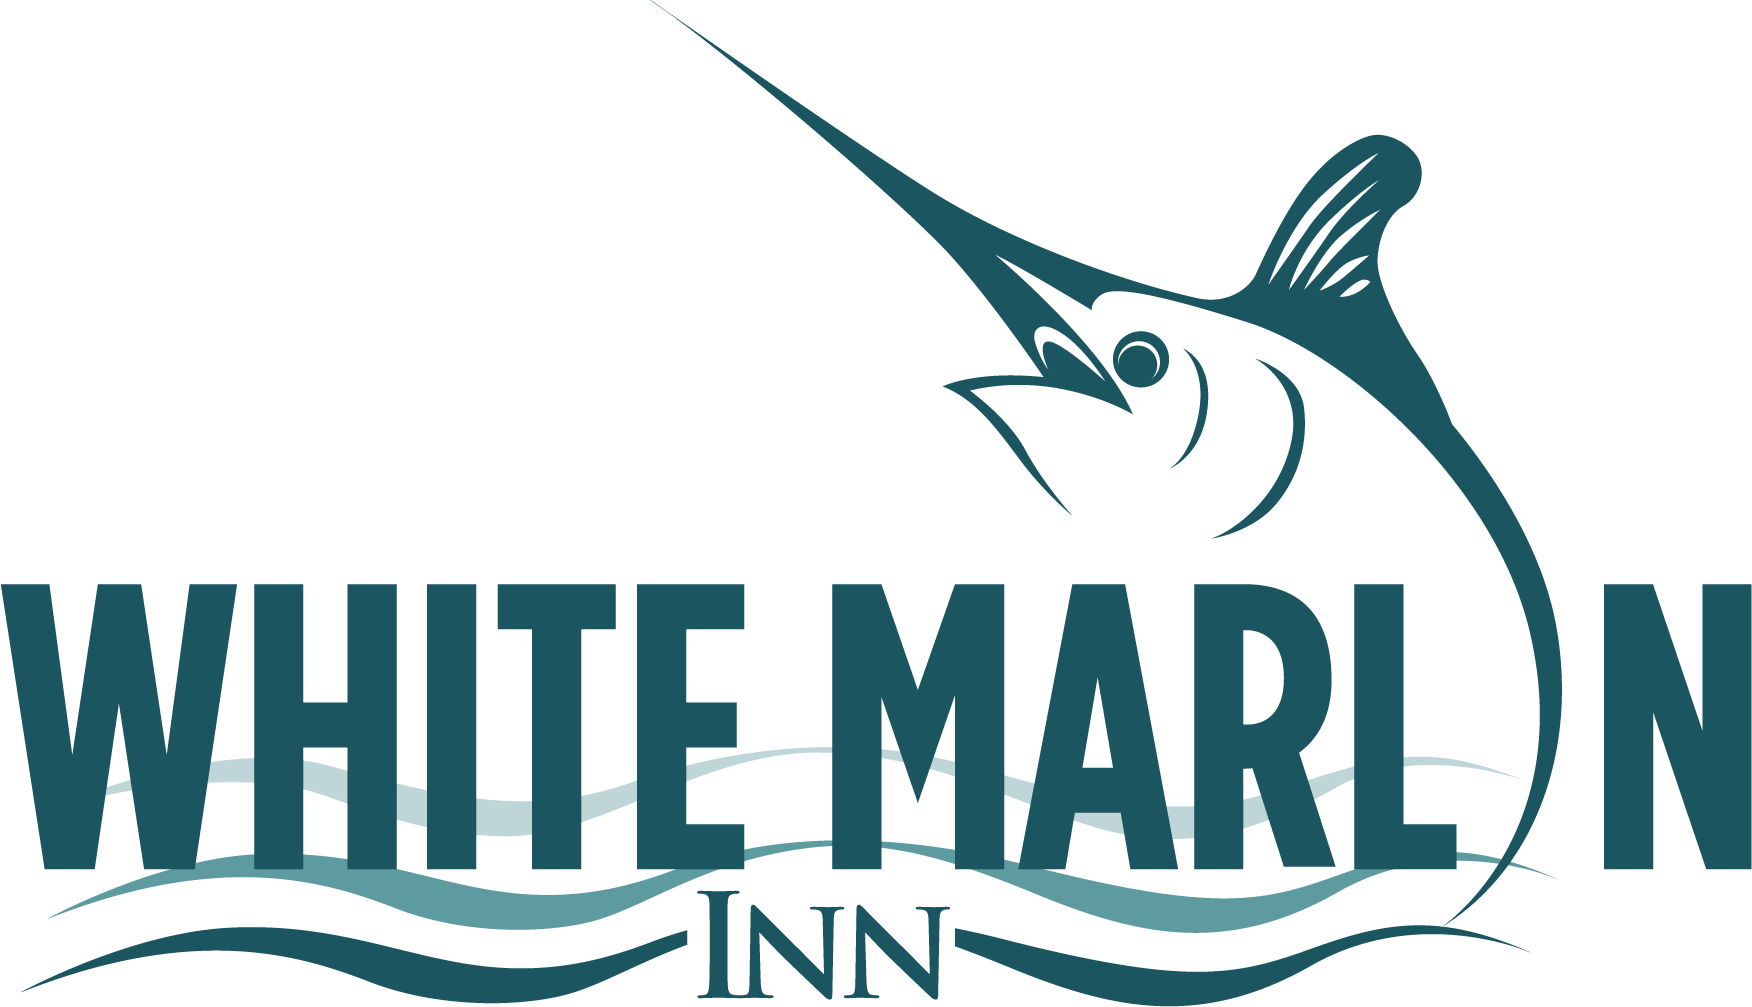 downtown ocean city md hotel white marlin inn low rates